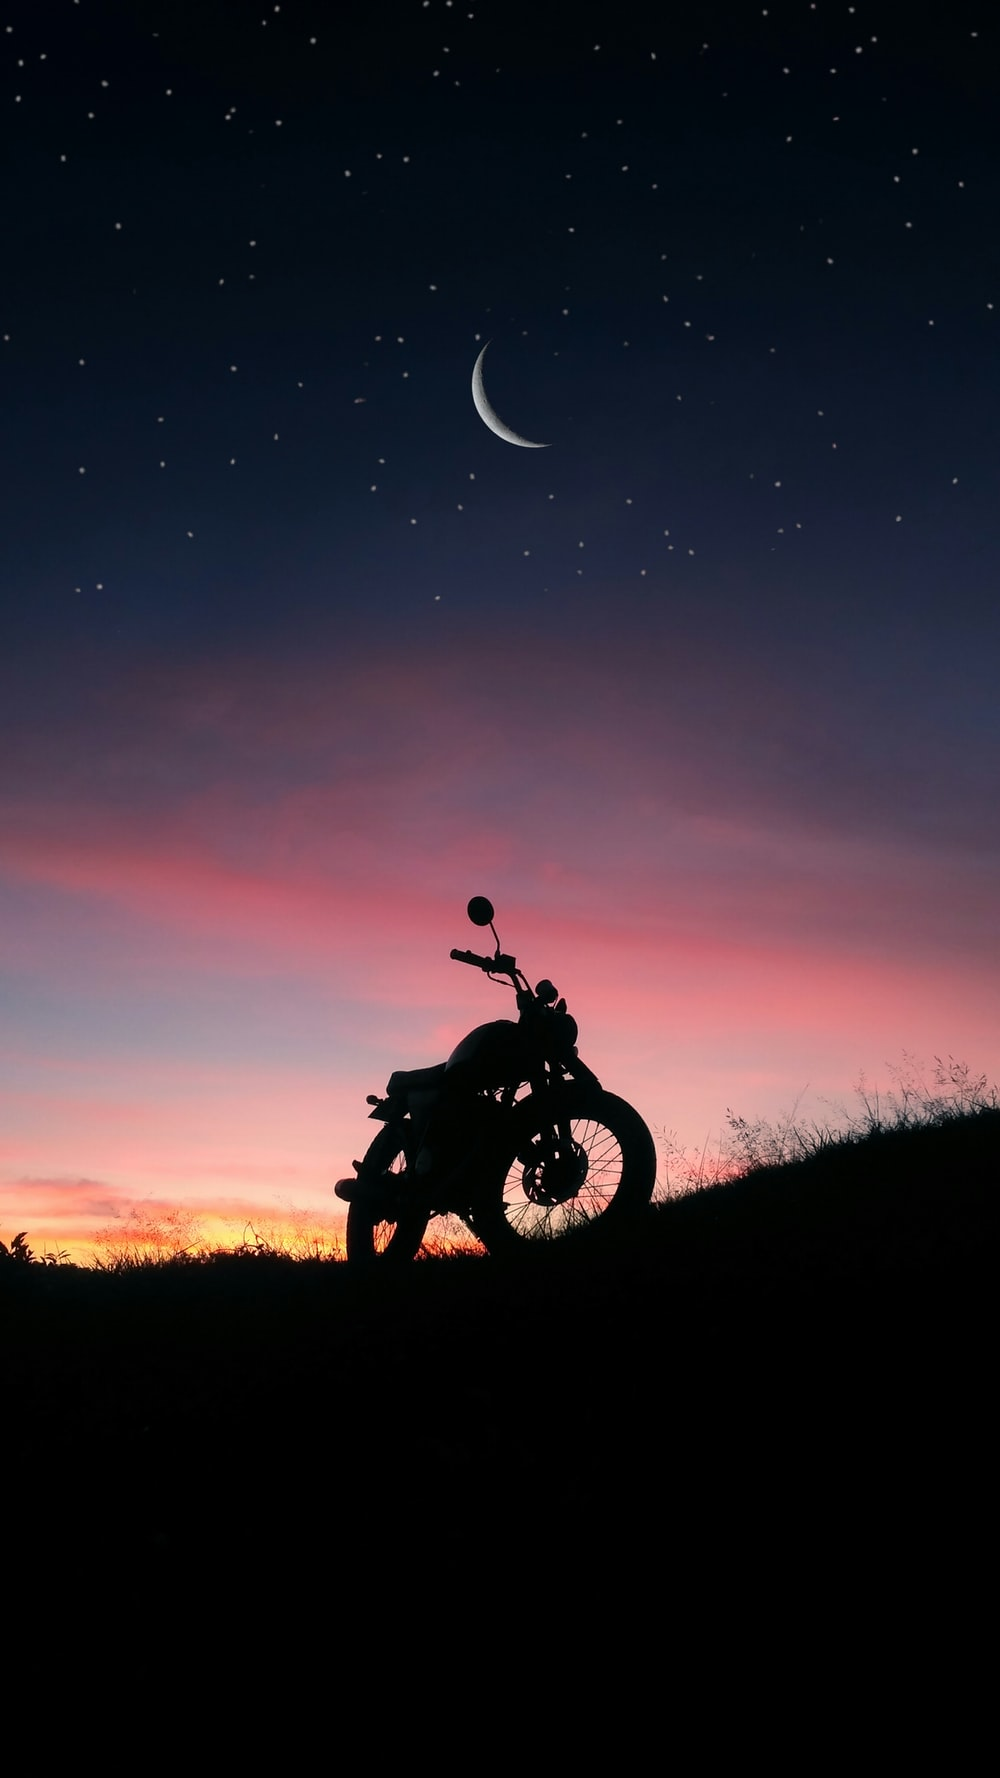 silhouette of motorcycle on grass field at night